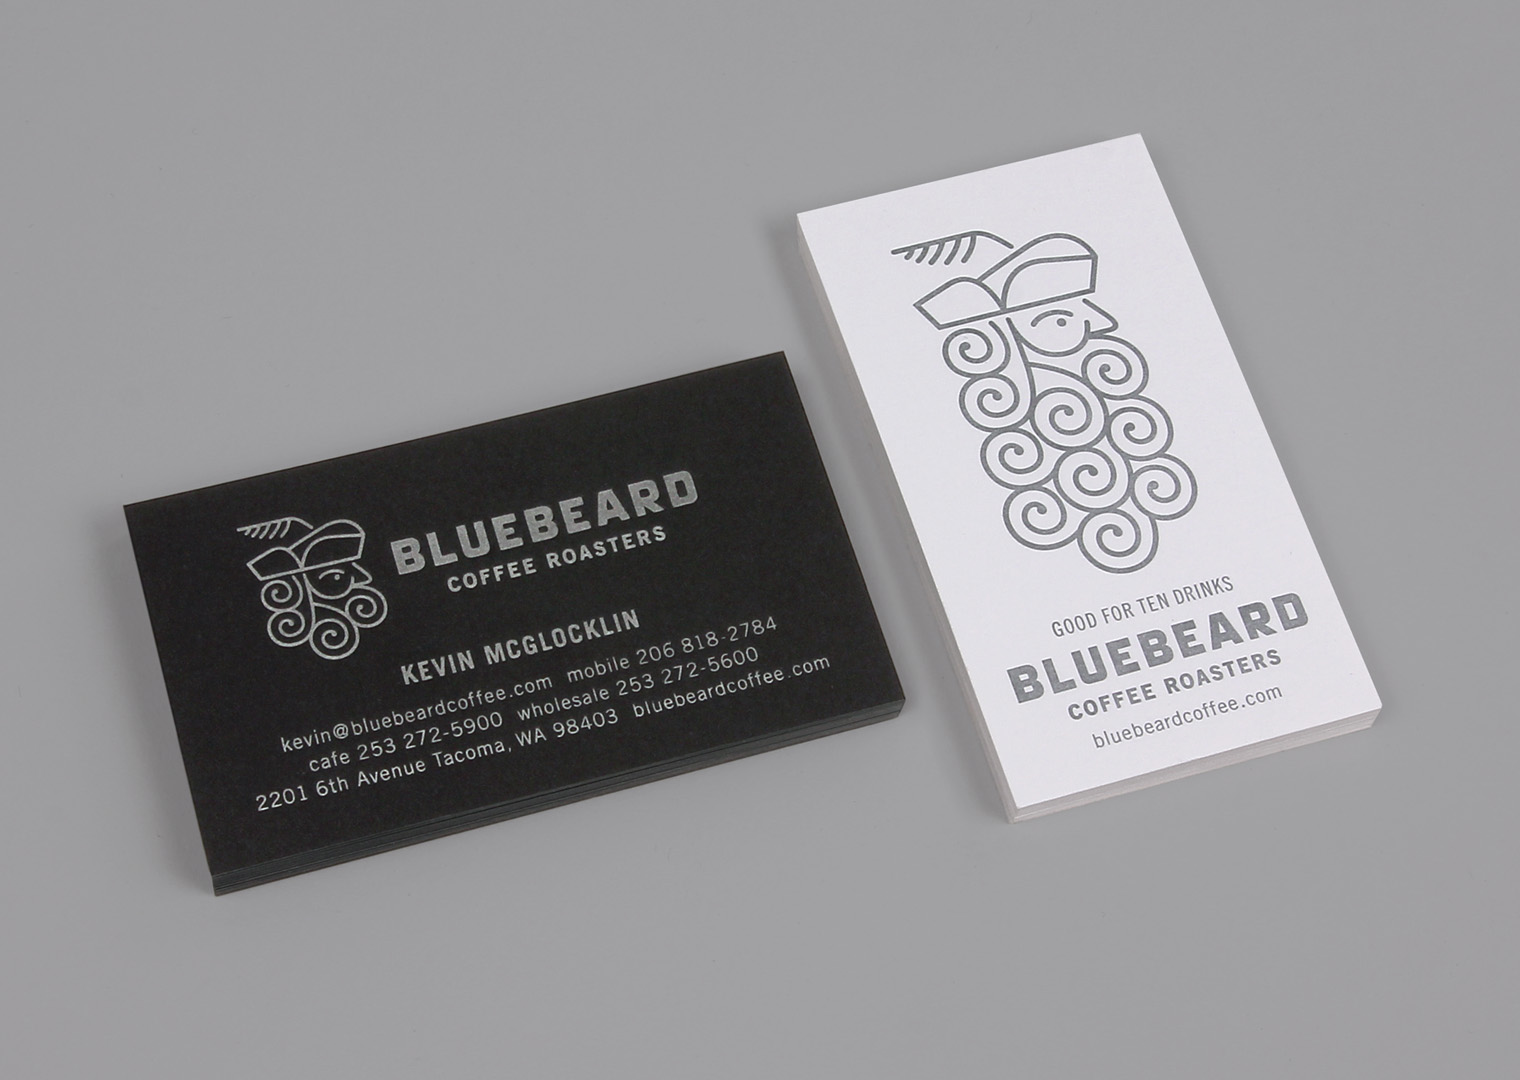 Bluebeard Coffee Roasters cards